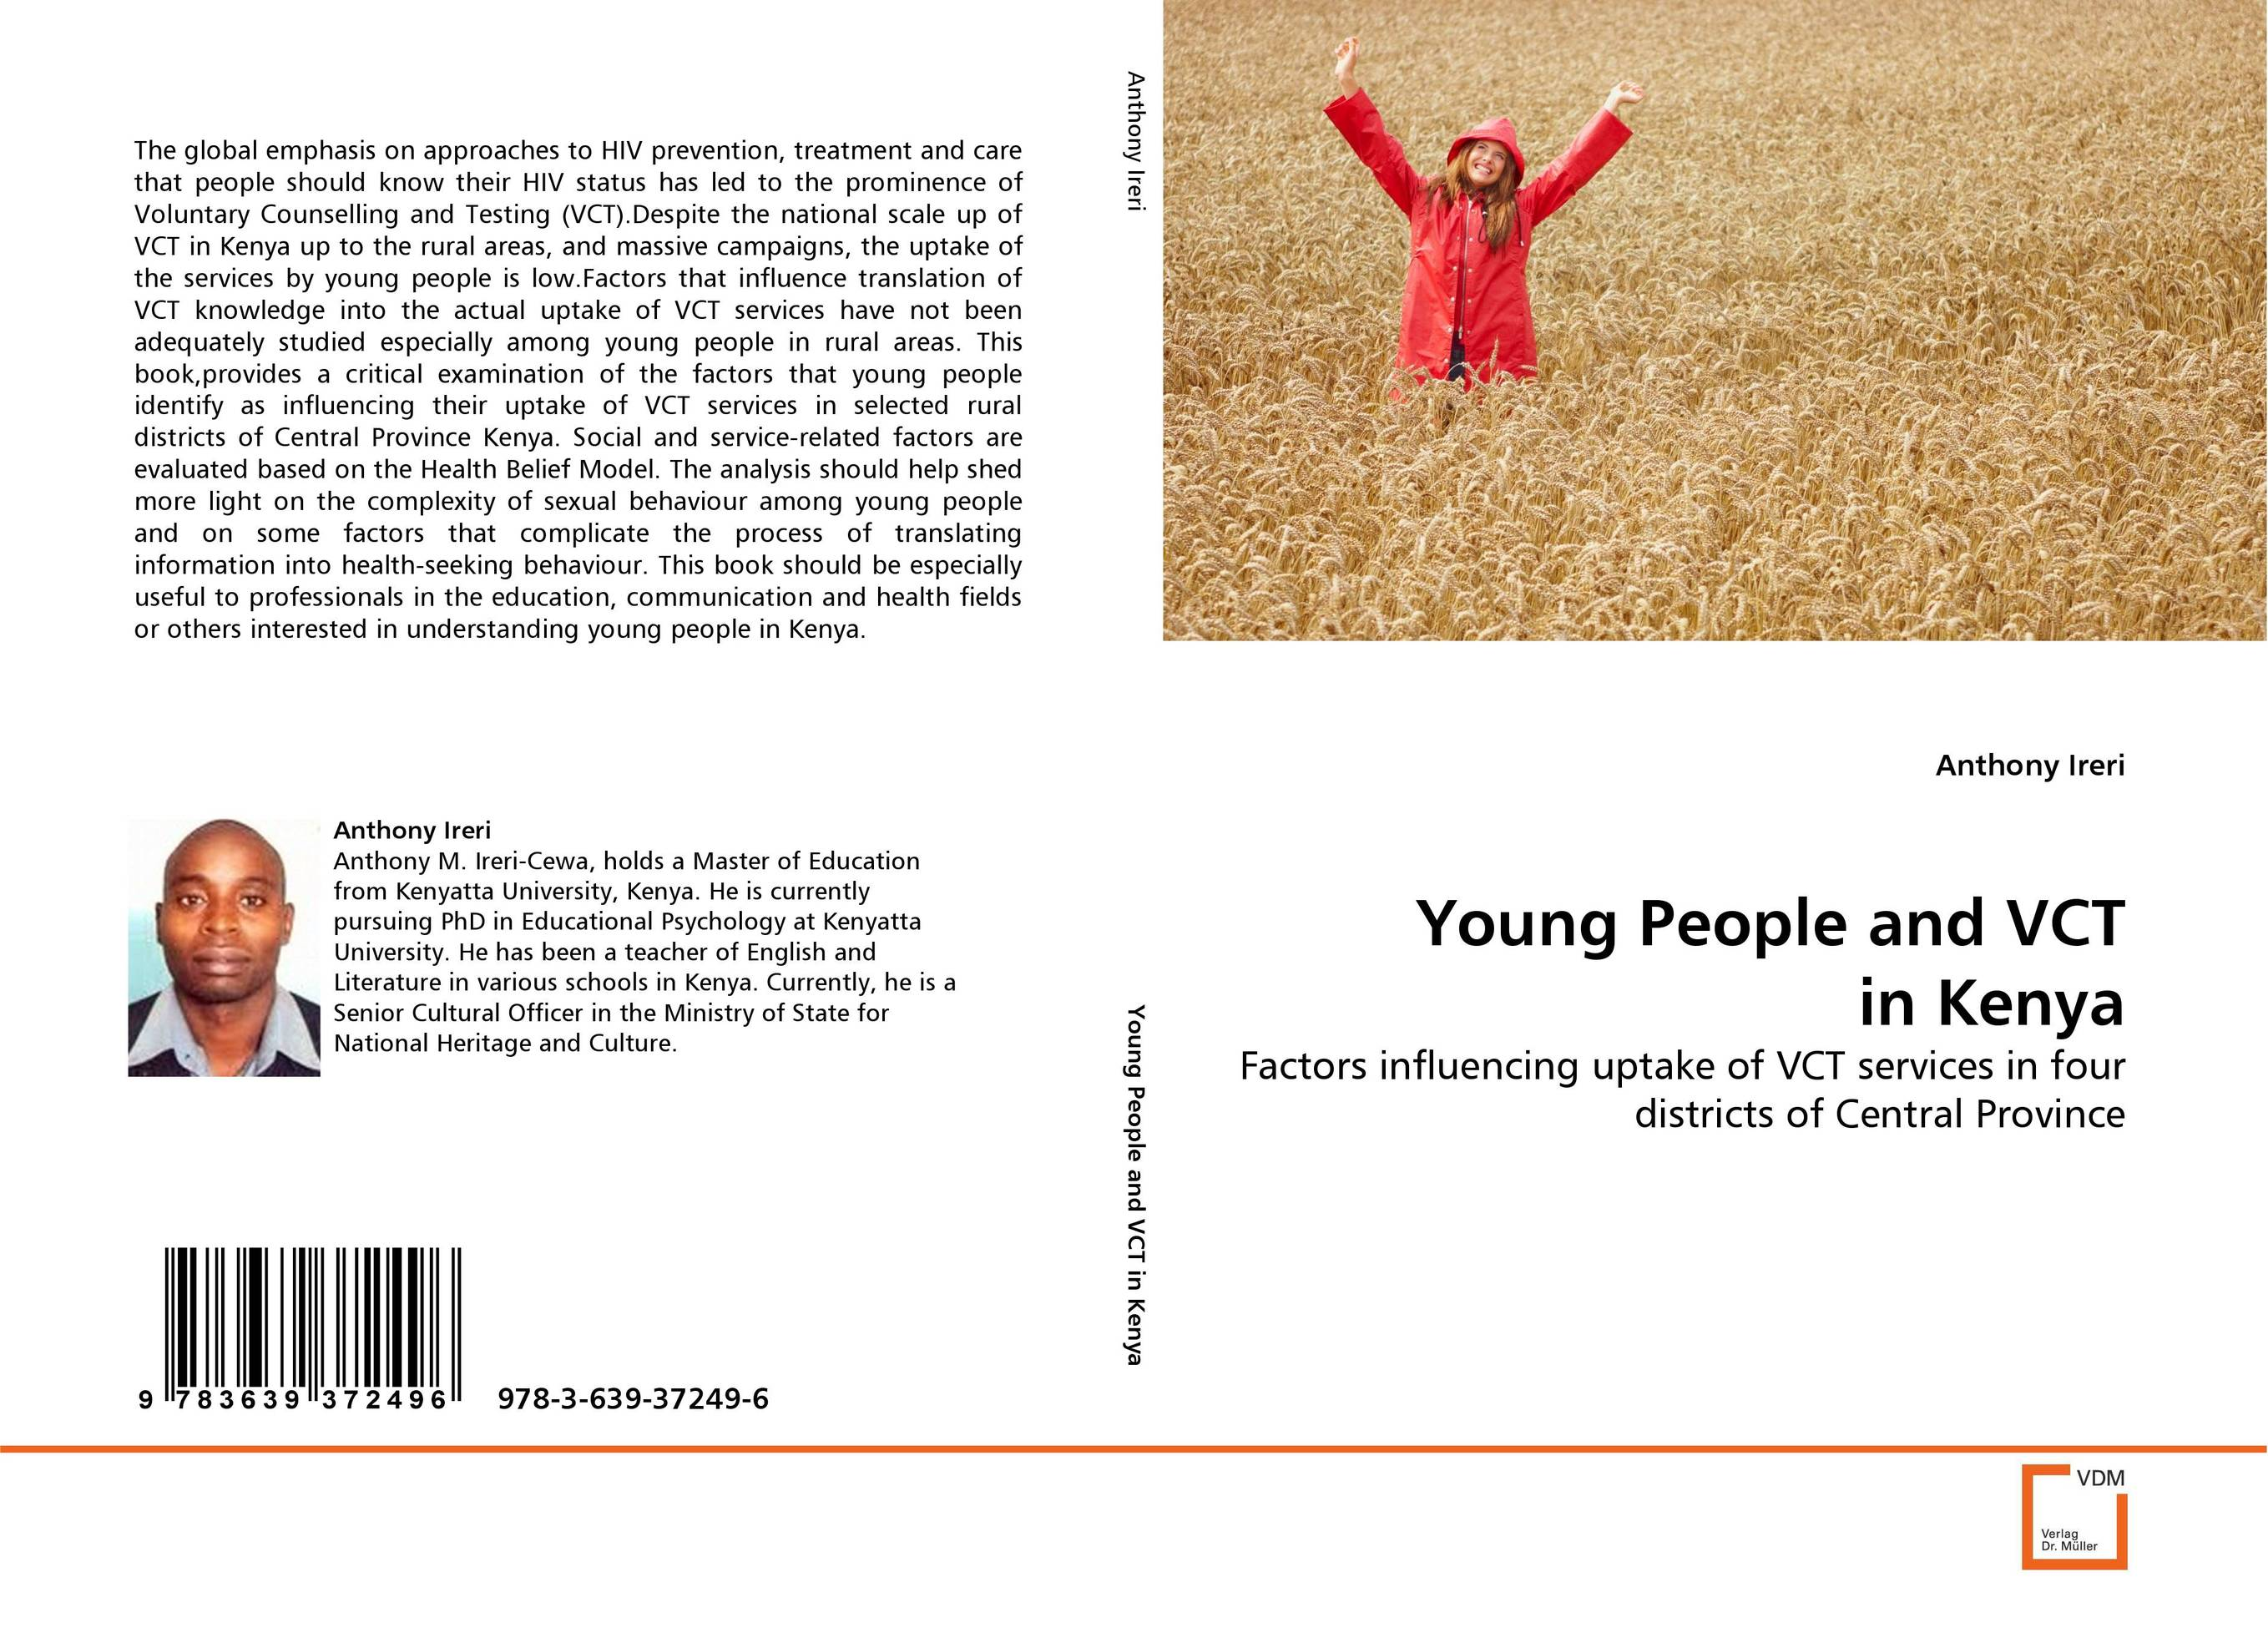 Young People and VCT in Kenya